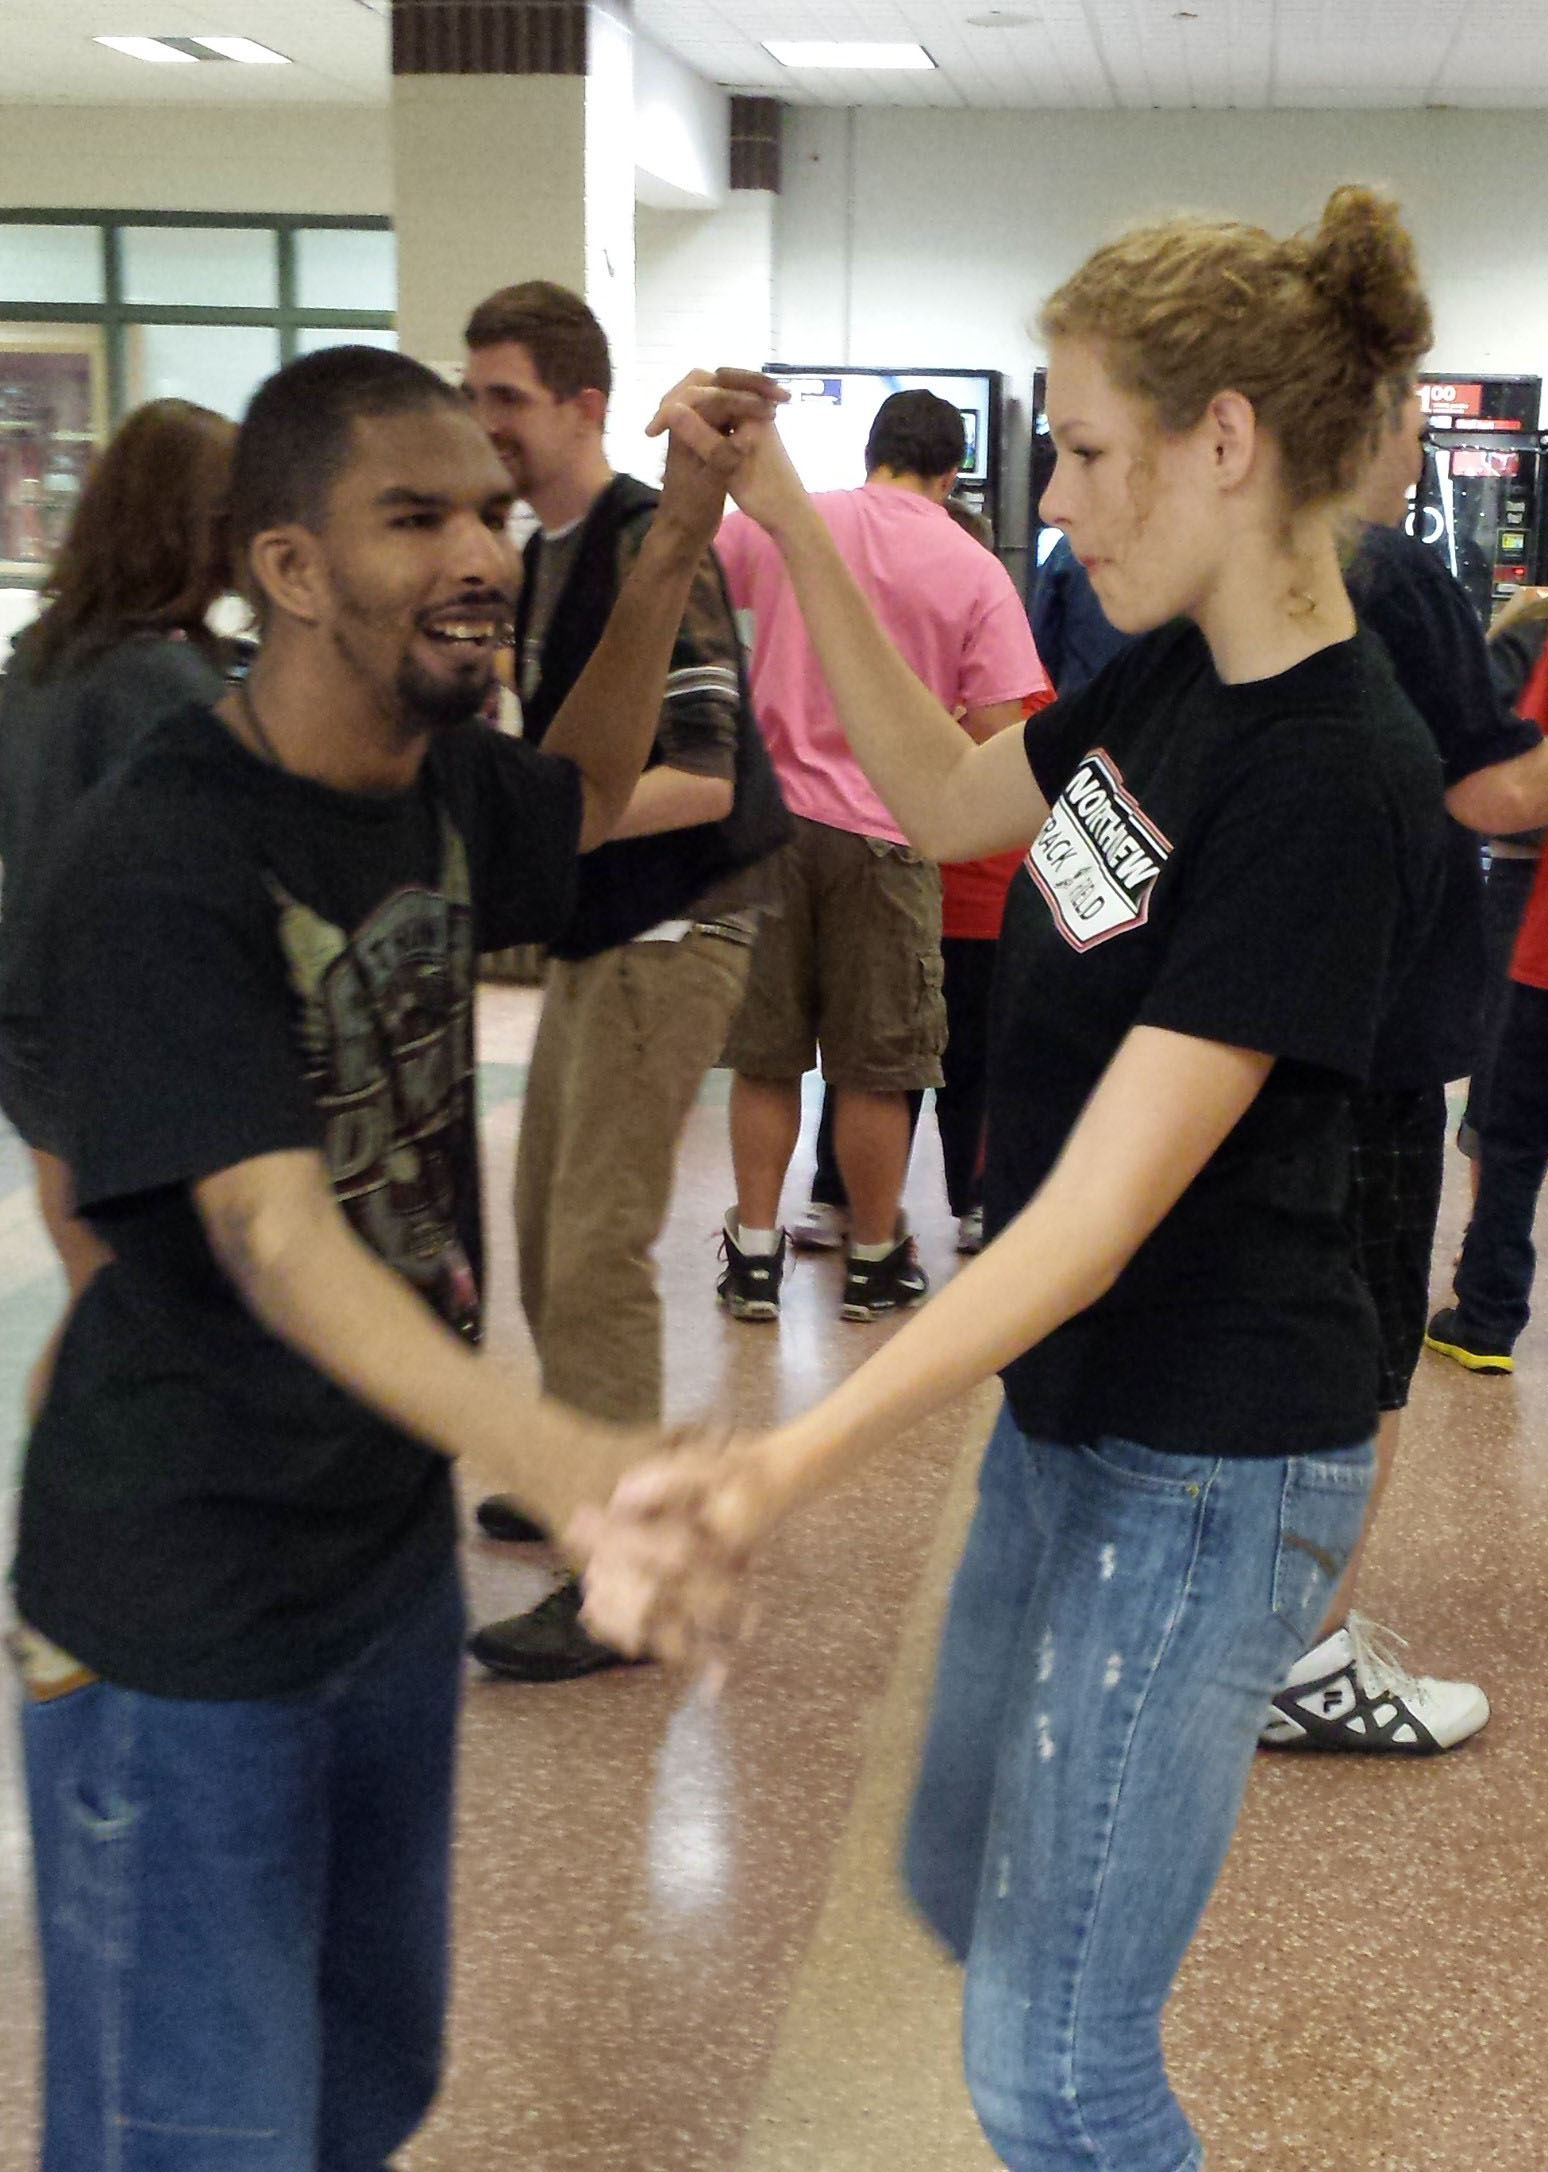 Northview senior Kendra Campbell twists the night away with Troy, a student from the Kent Vocational Options program.